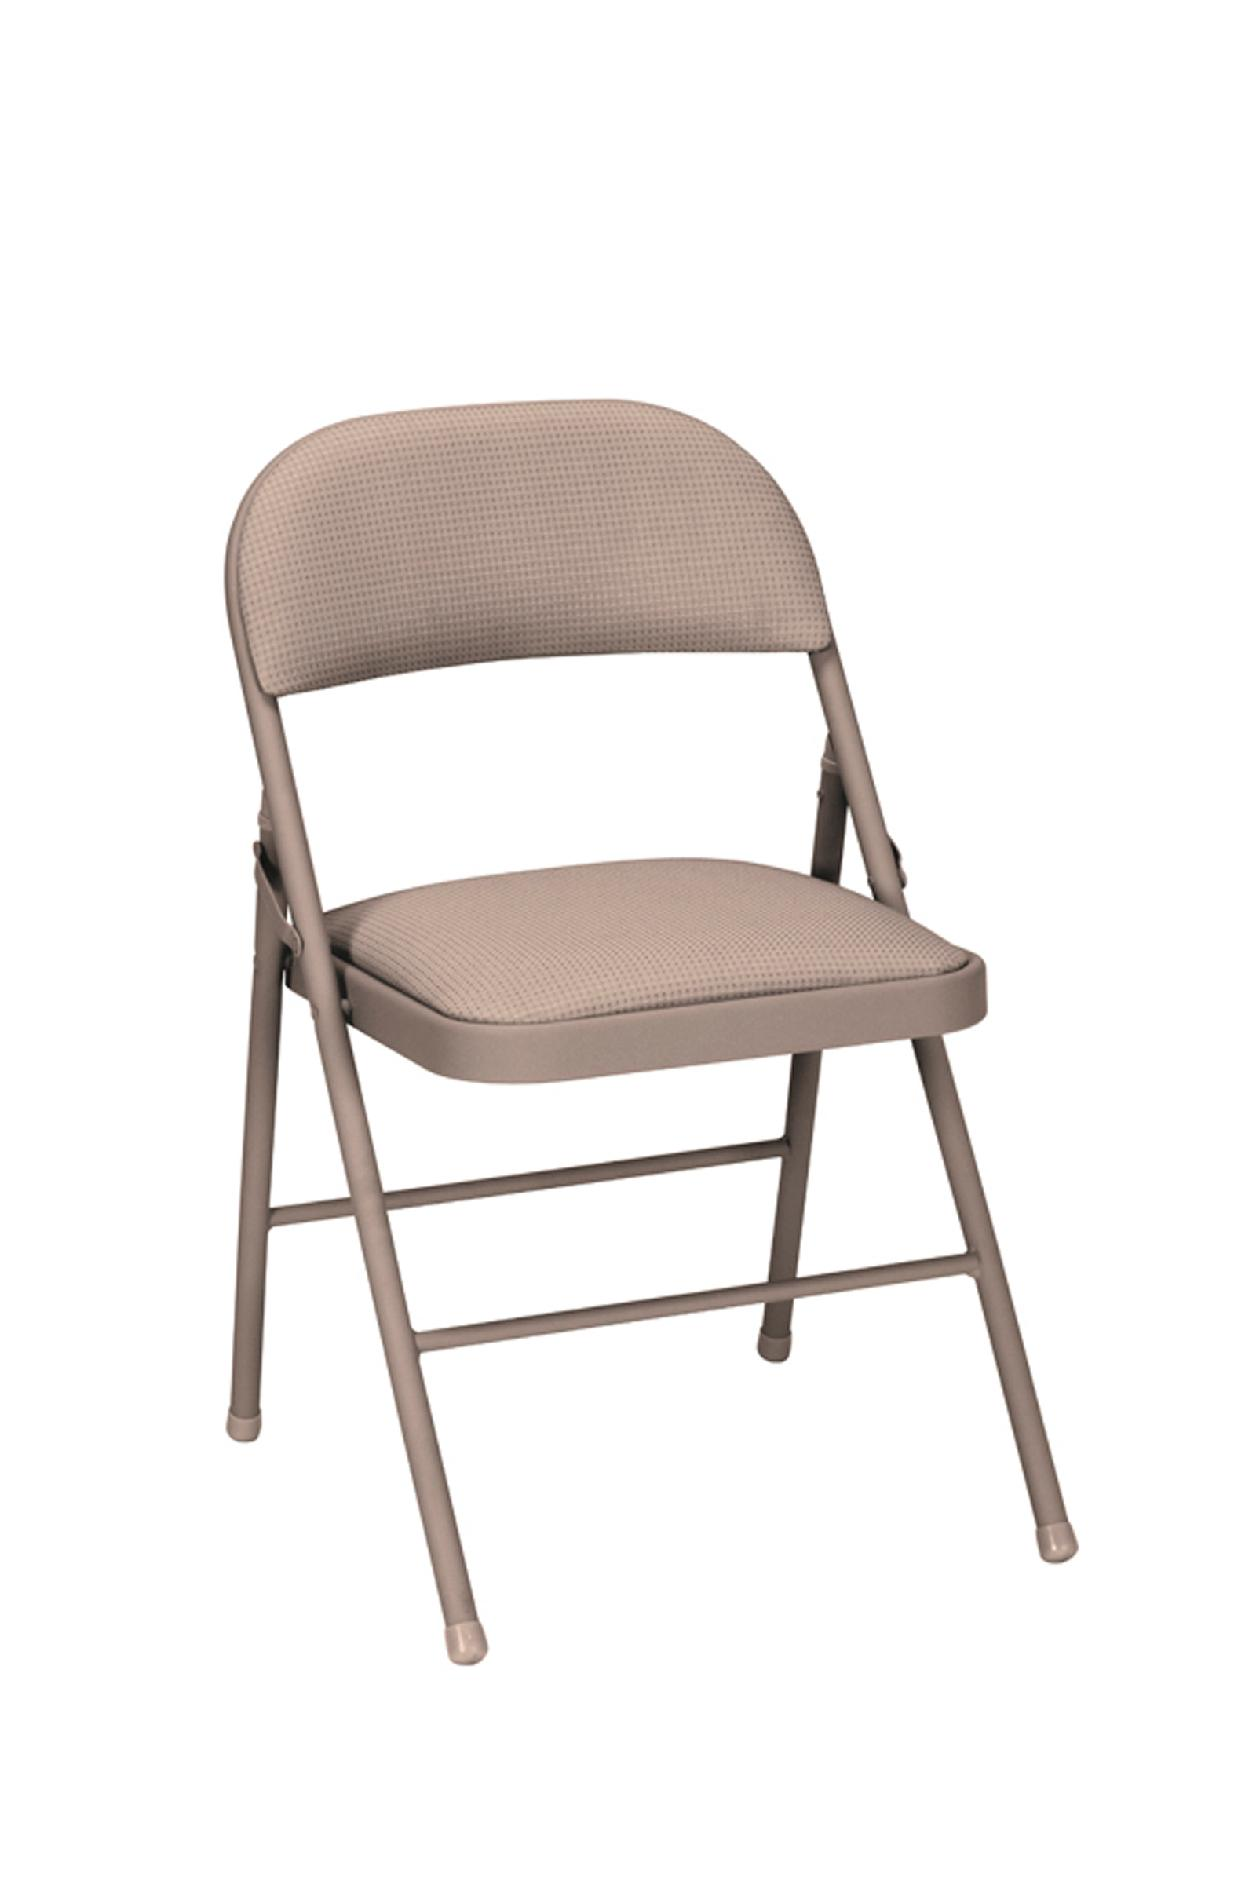 Fabric Folding Chairs Storage Folding Chair Kmart